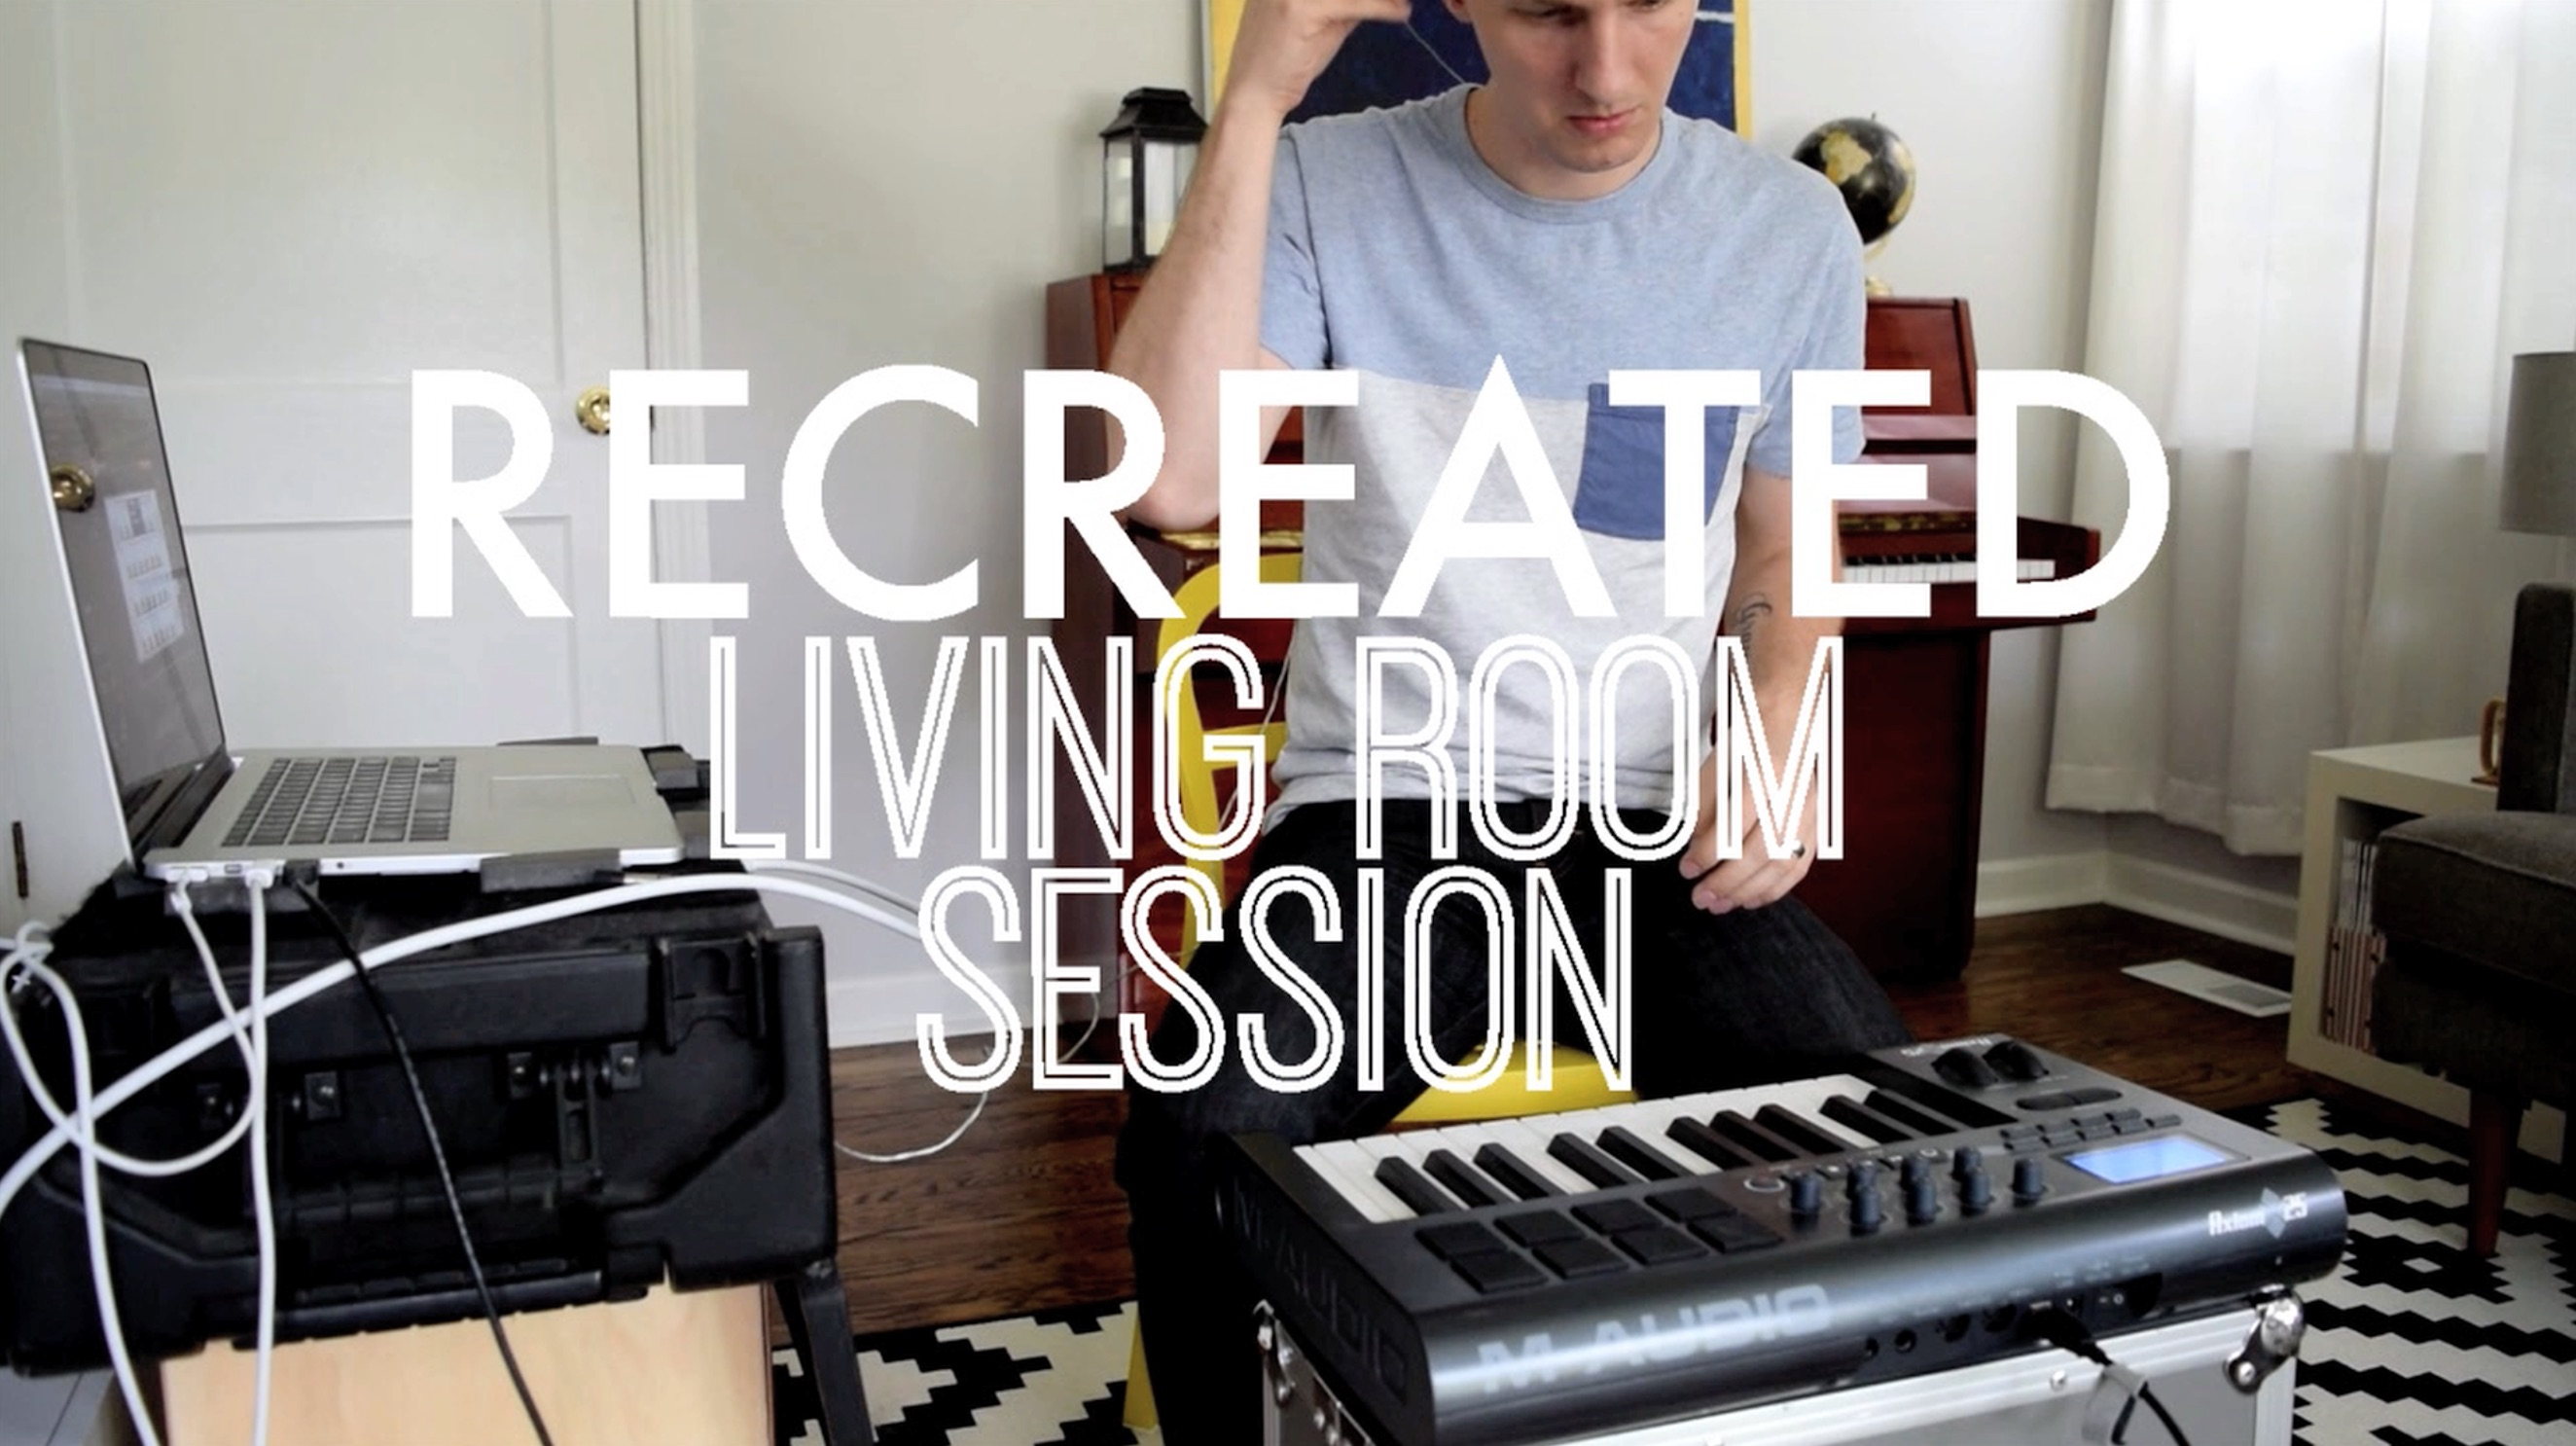 Recreated Living Room Session